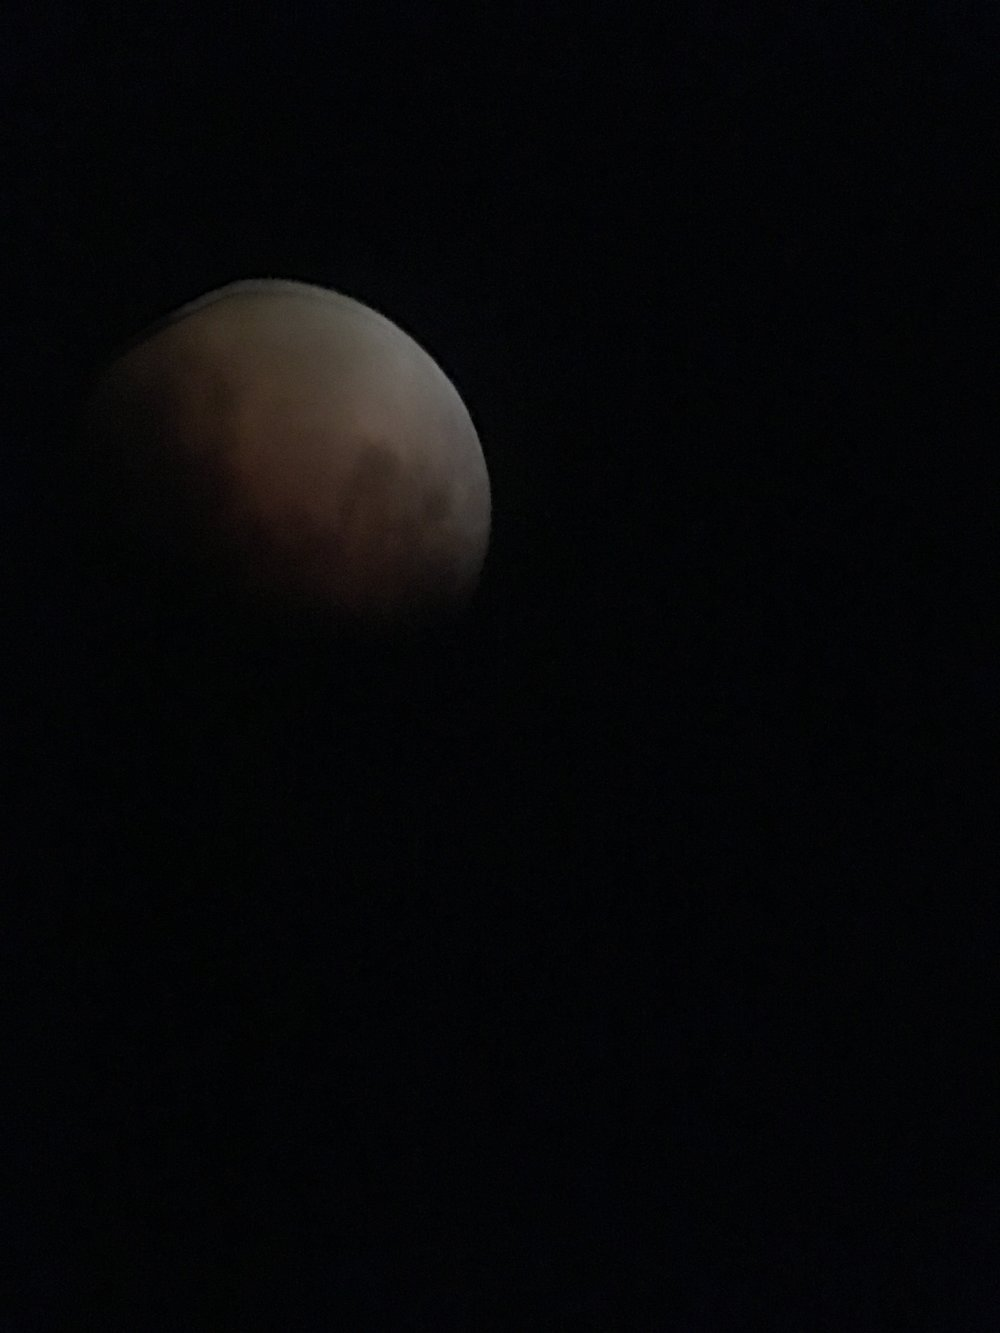 Alt-Text: Moon eclipse close up with black background.